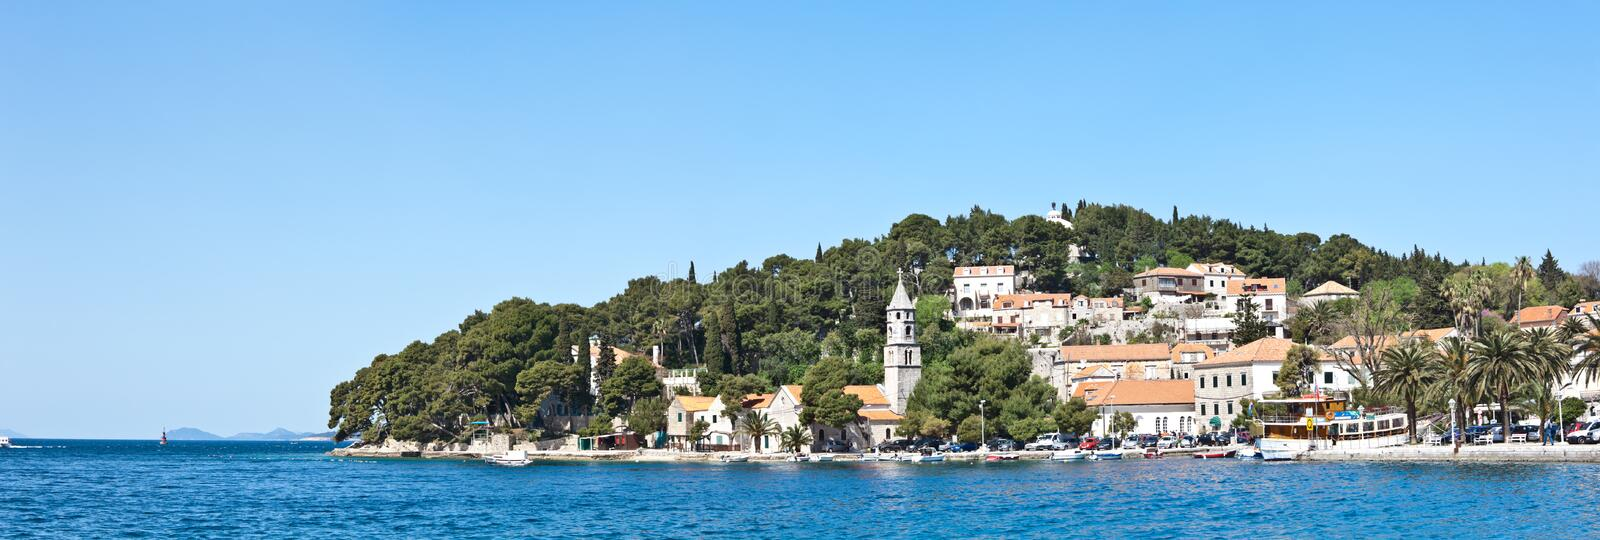 Cavtat images stock